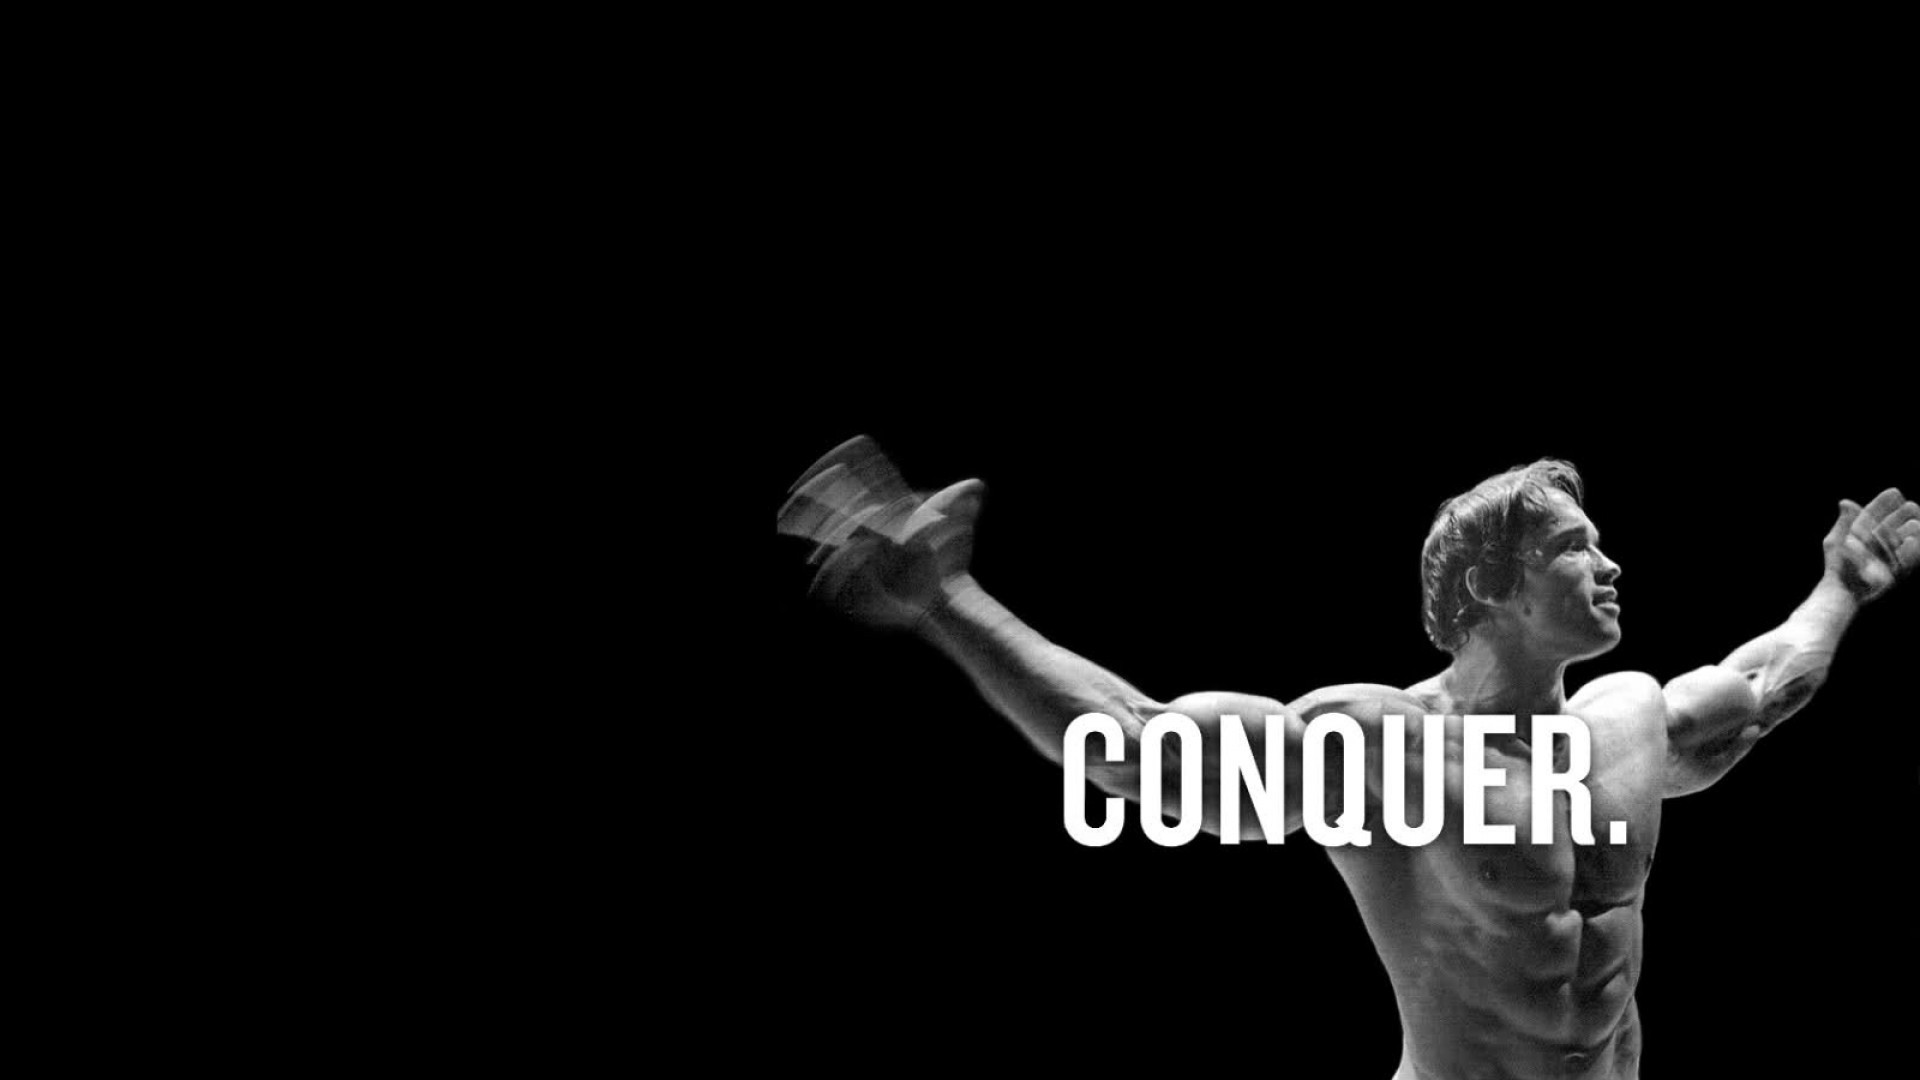 1920x1080 Gym Motivation Wallpapers Guiler Workout